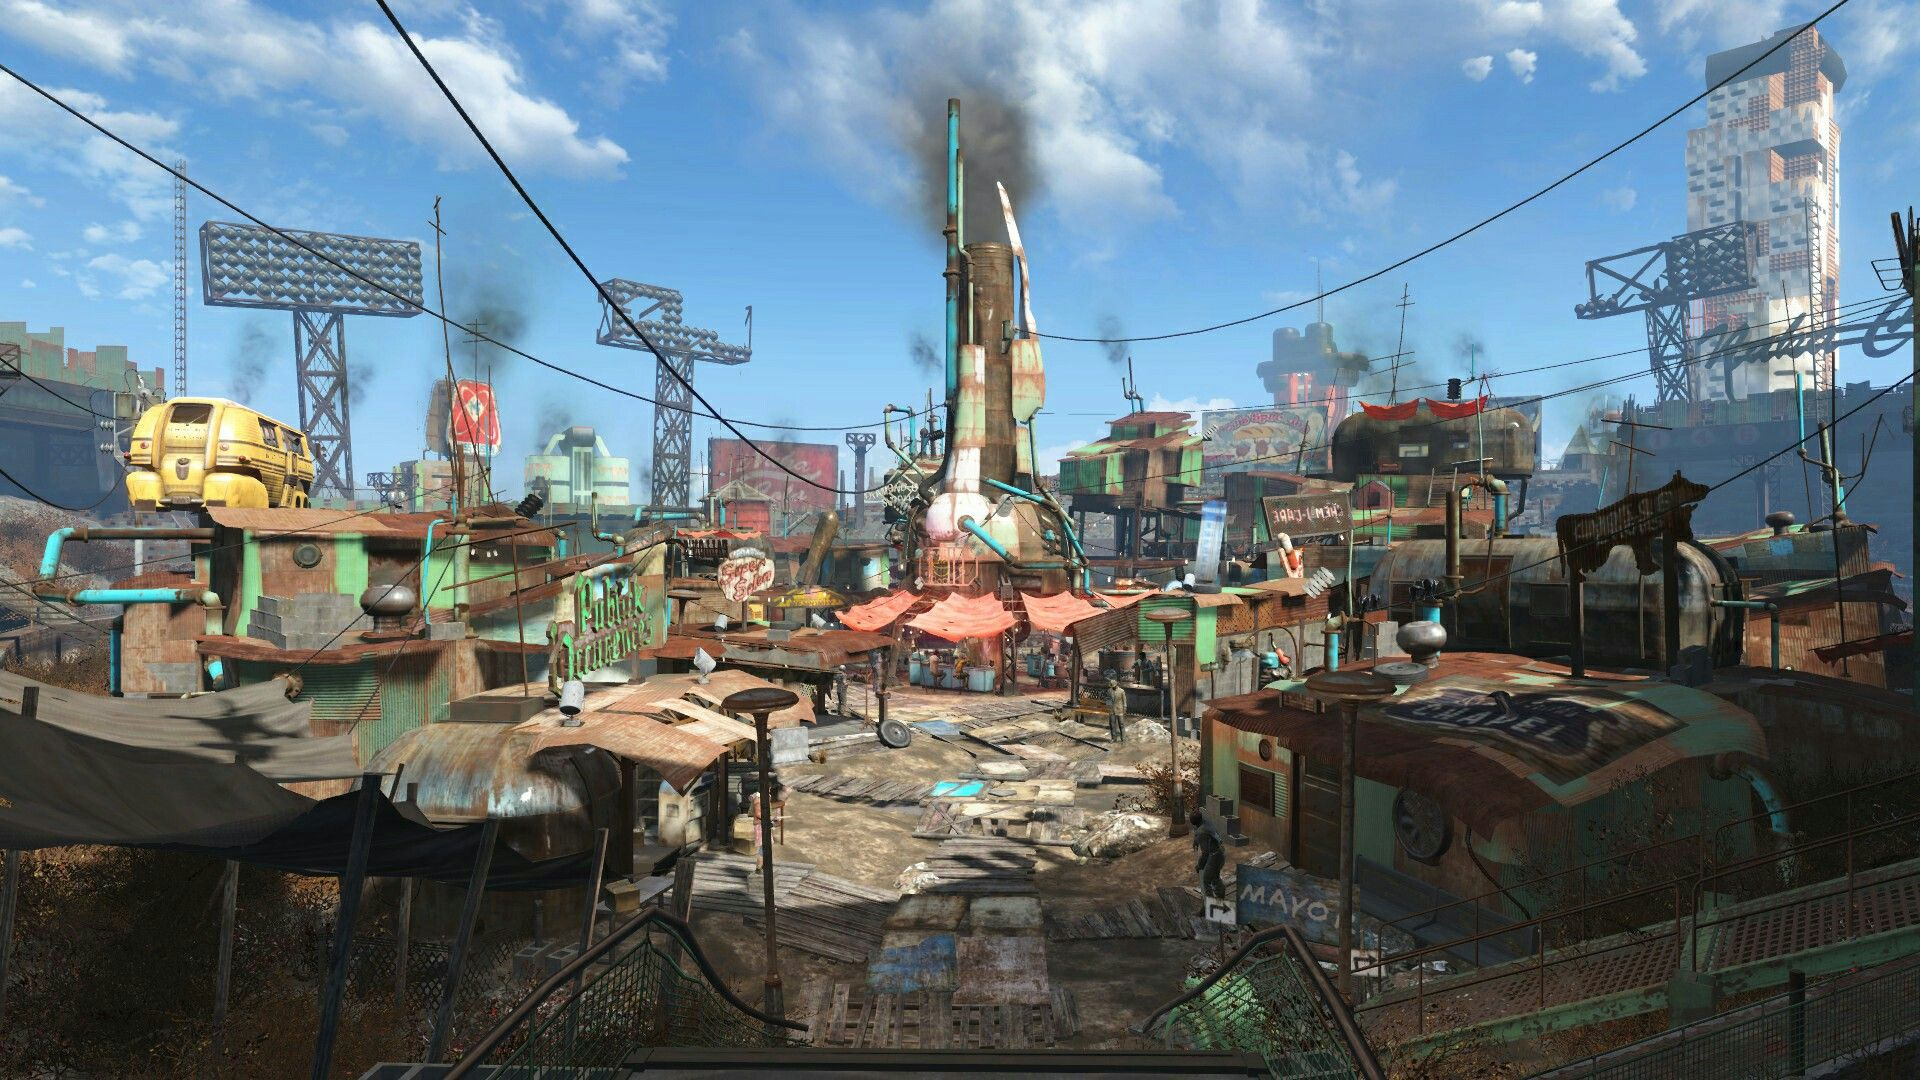 Diamond City Fallout 4 Fallout Fallout 4 concept art Diamond 1920x1080